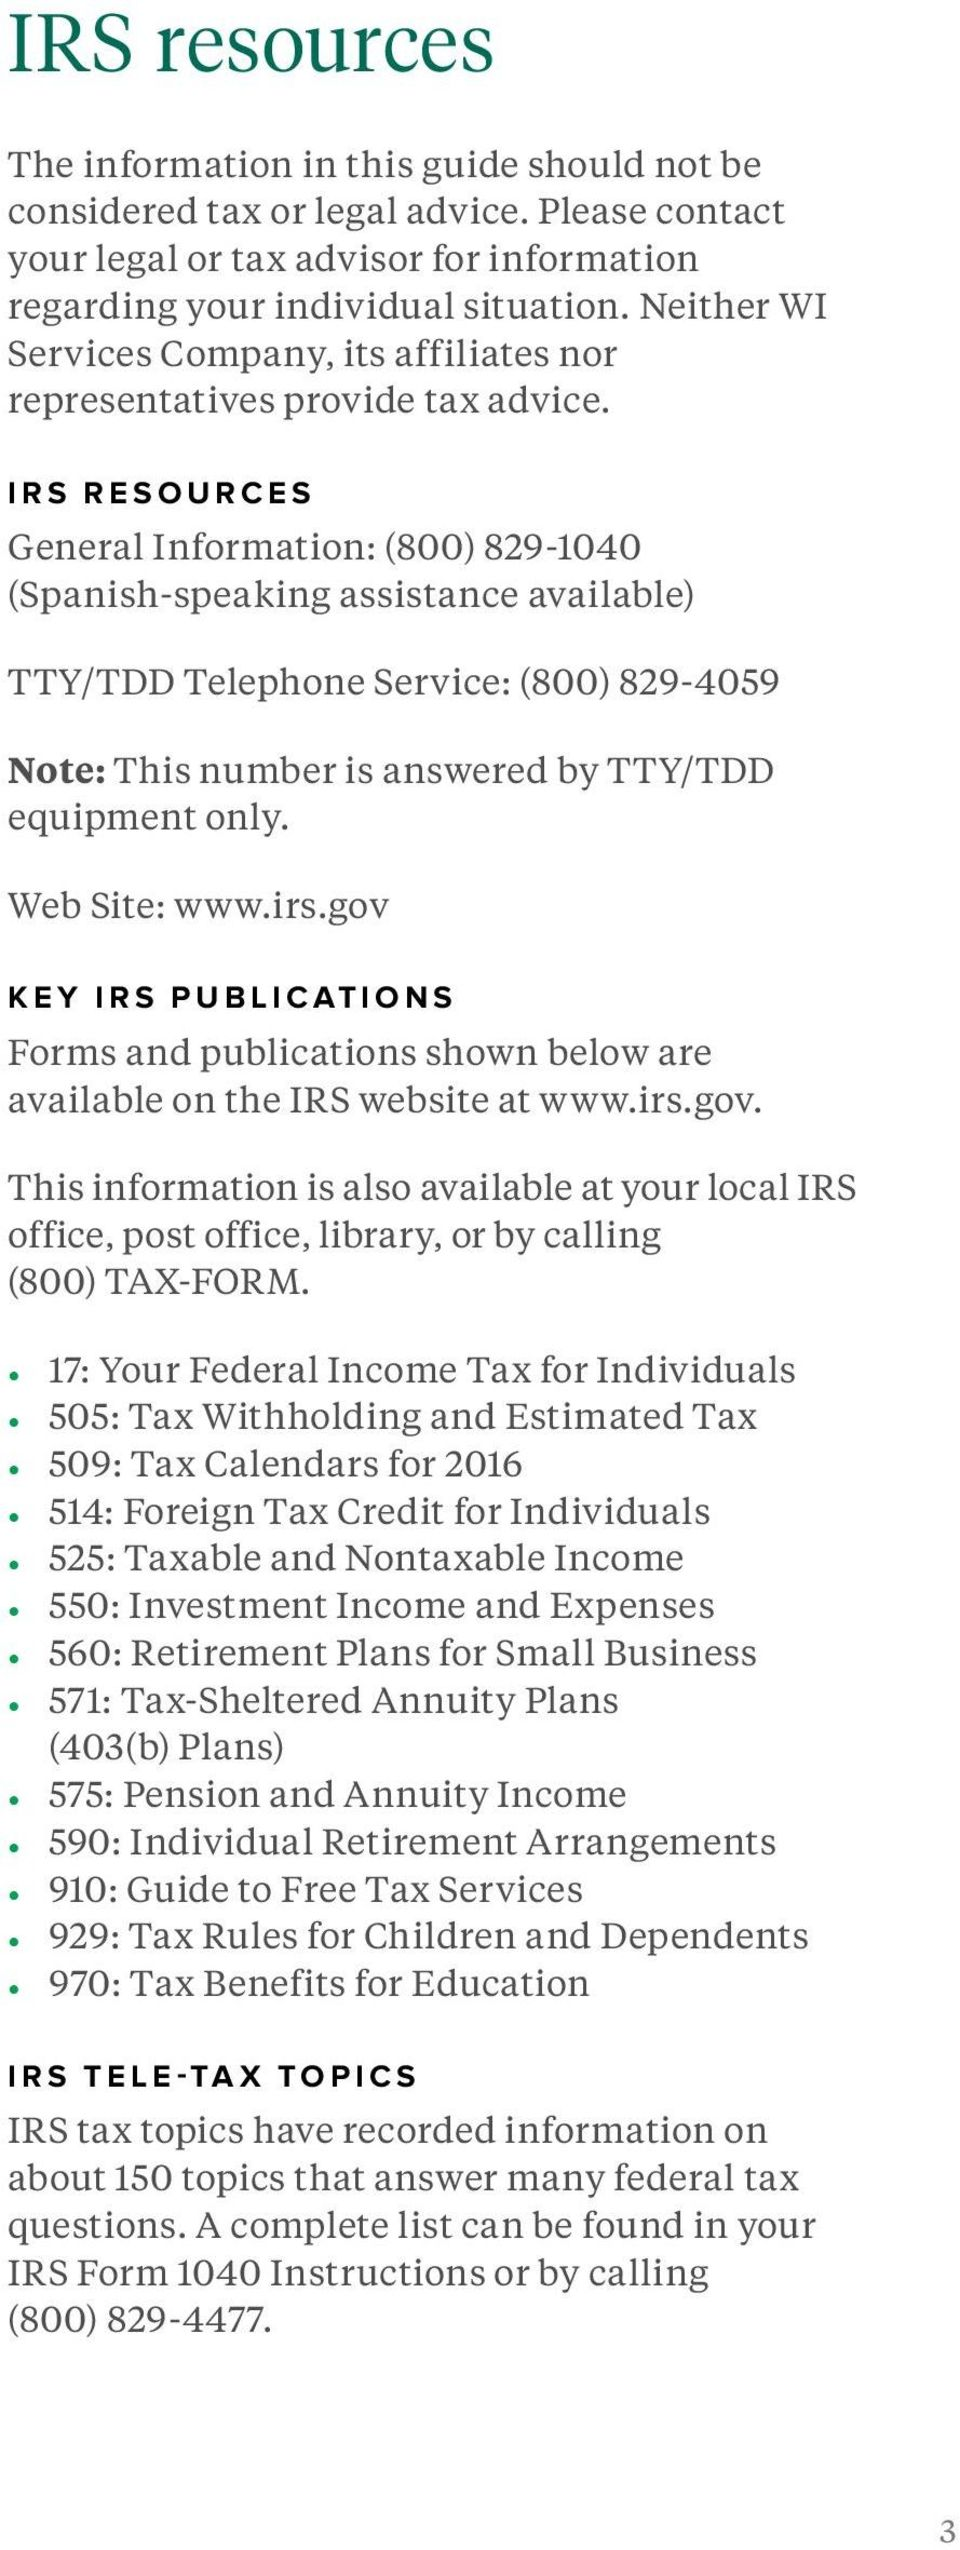 Irs form 1099 r instructions gallery standard form examples form new form 1099 r instructions 1099 form 2012 div form 1099 r instructions distributions form falaconquin